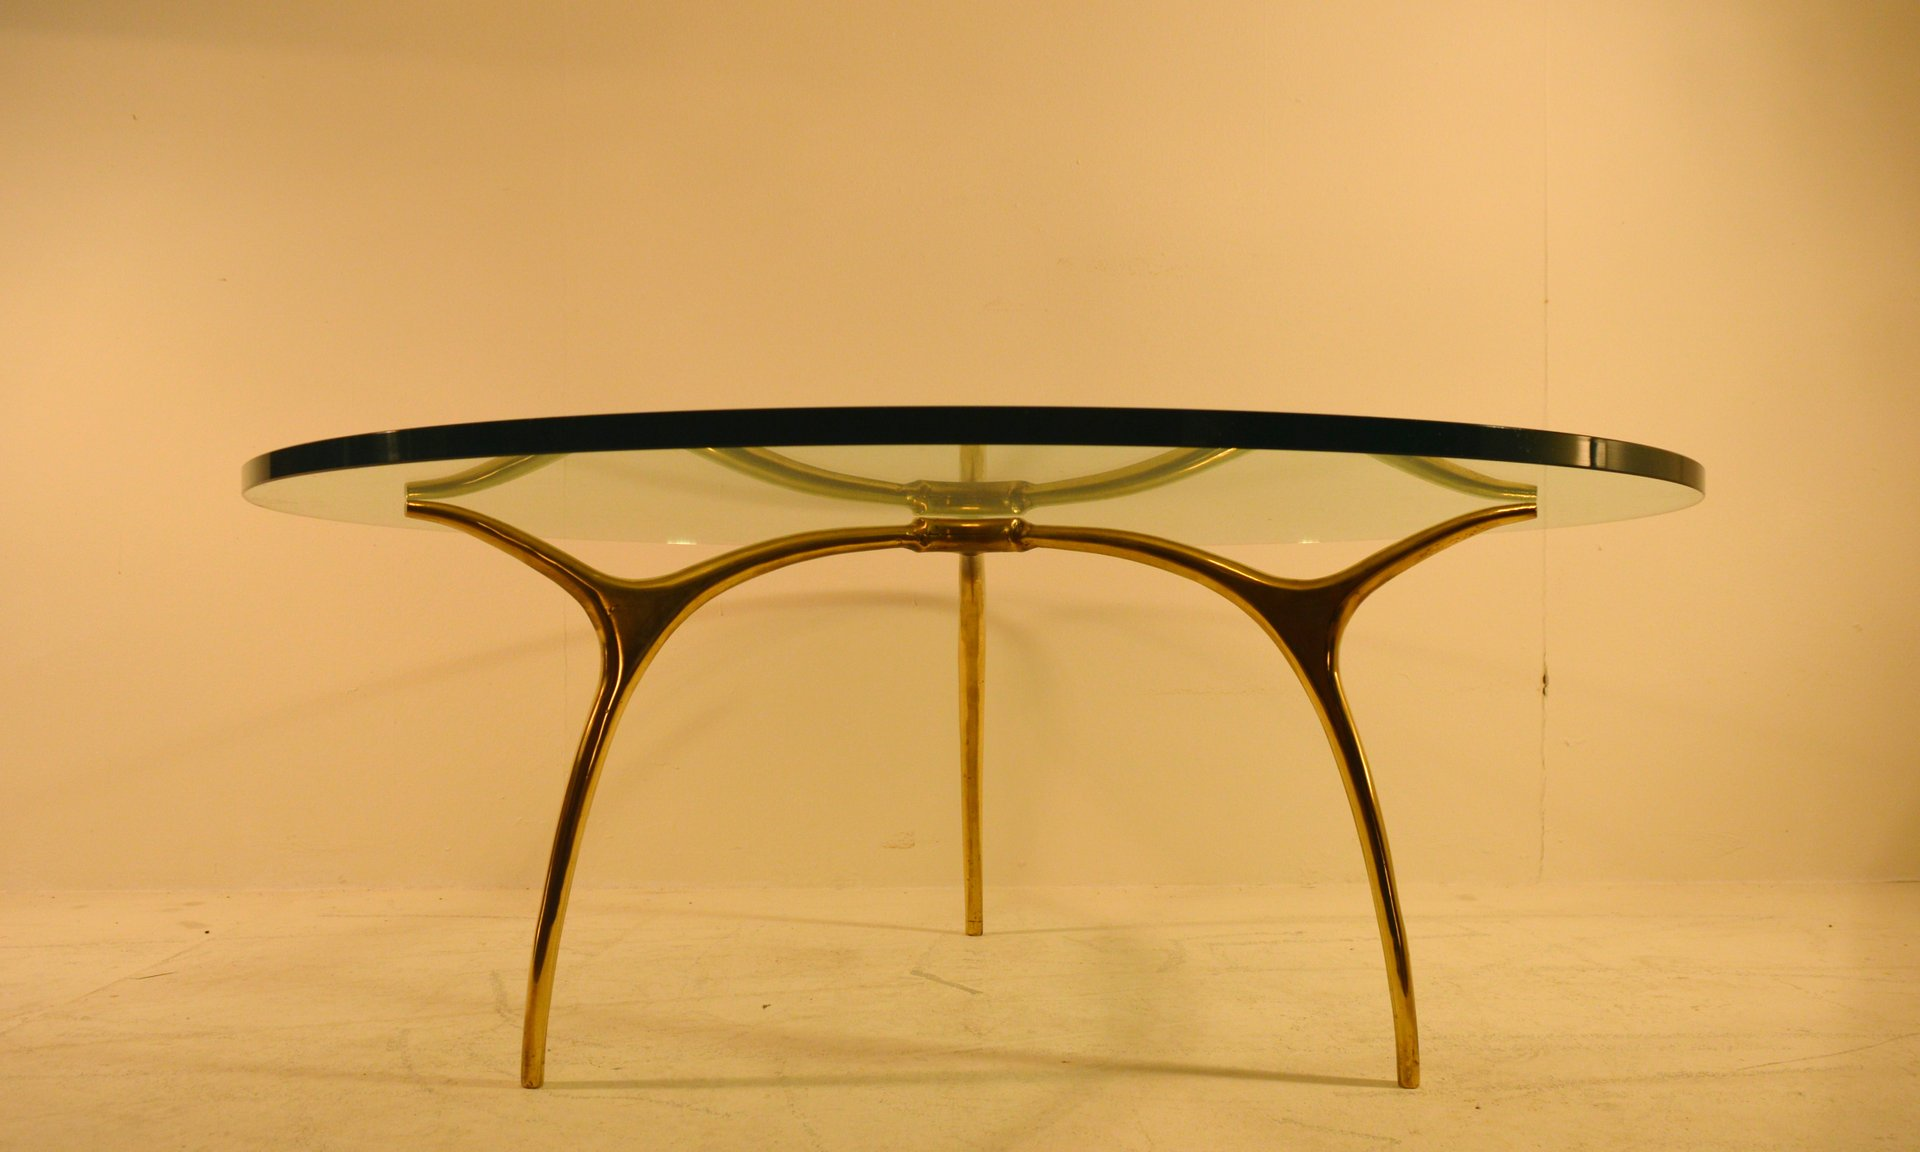 Bronze And Glass Coffee Table By Kouloufi For Ets Vanderborght Fr Res 1958